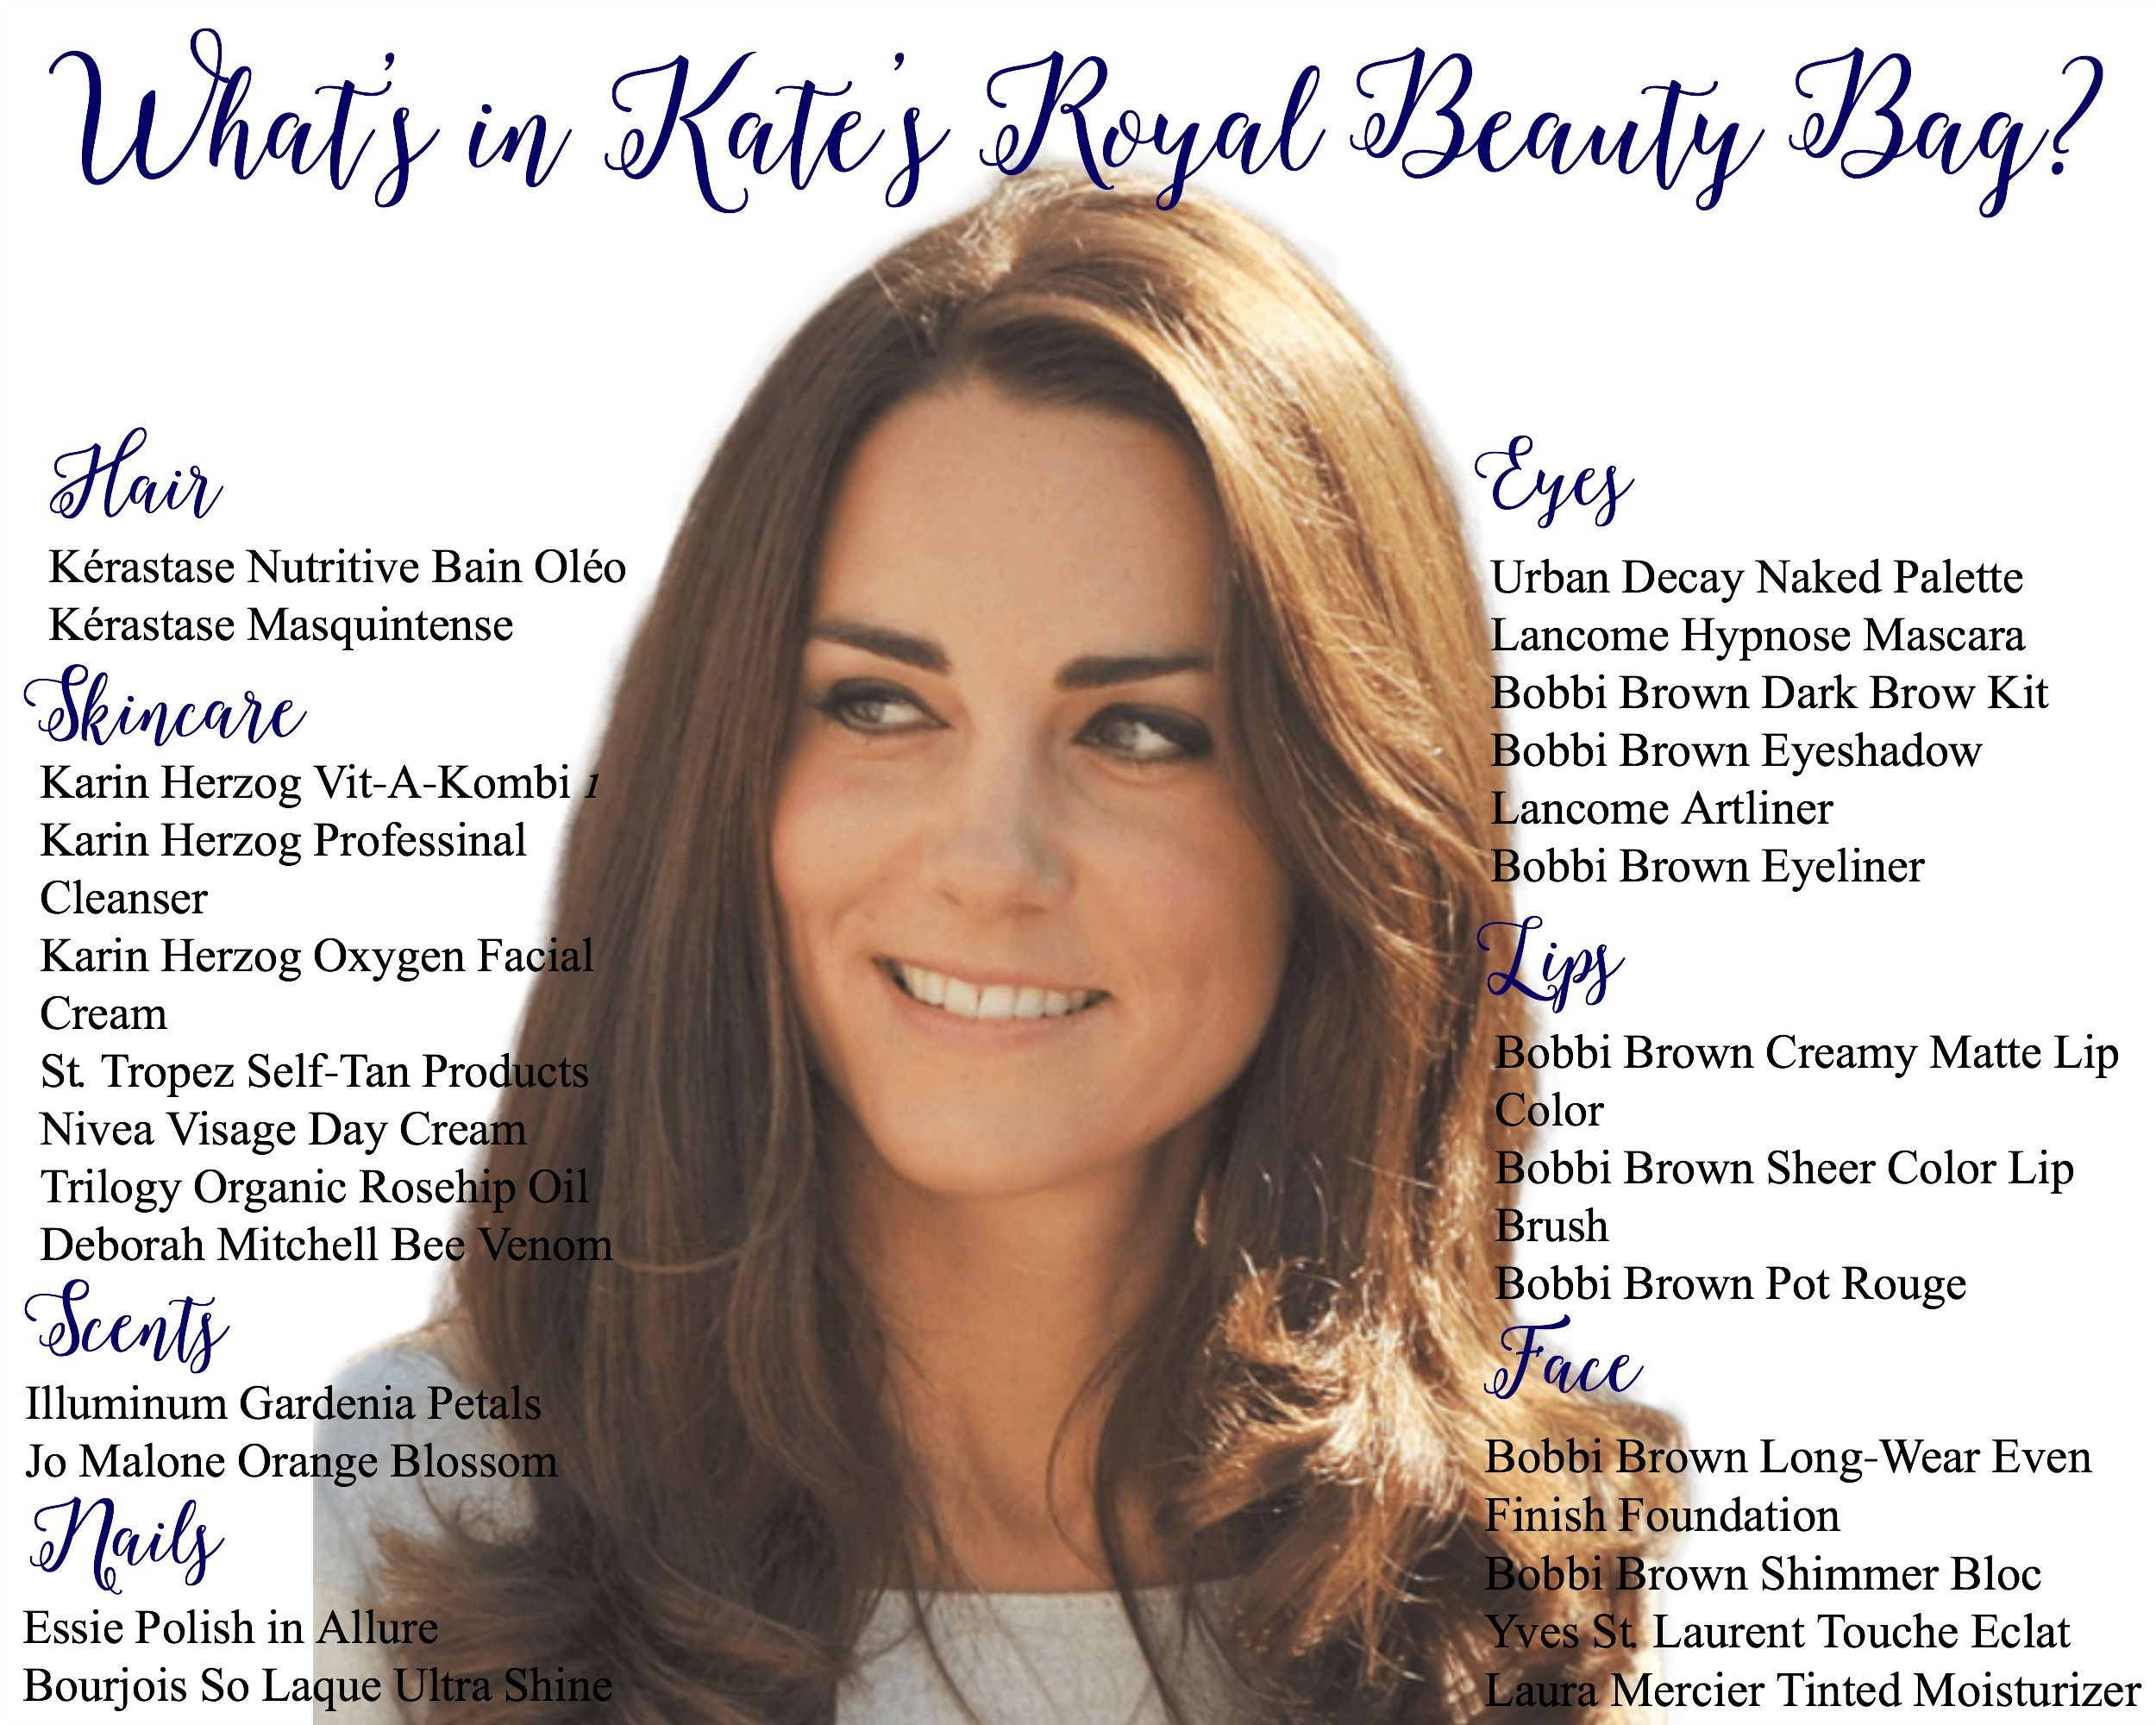 Kate Middleton Beauty Products - What She Uses  Kate middleton